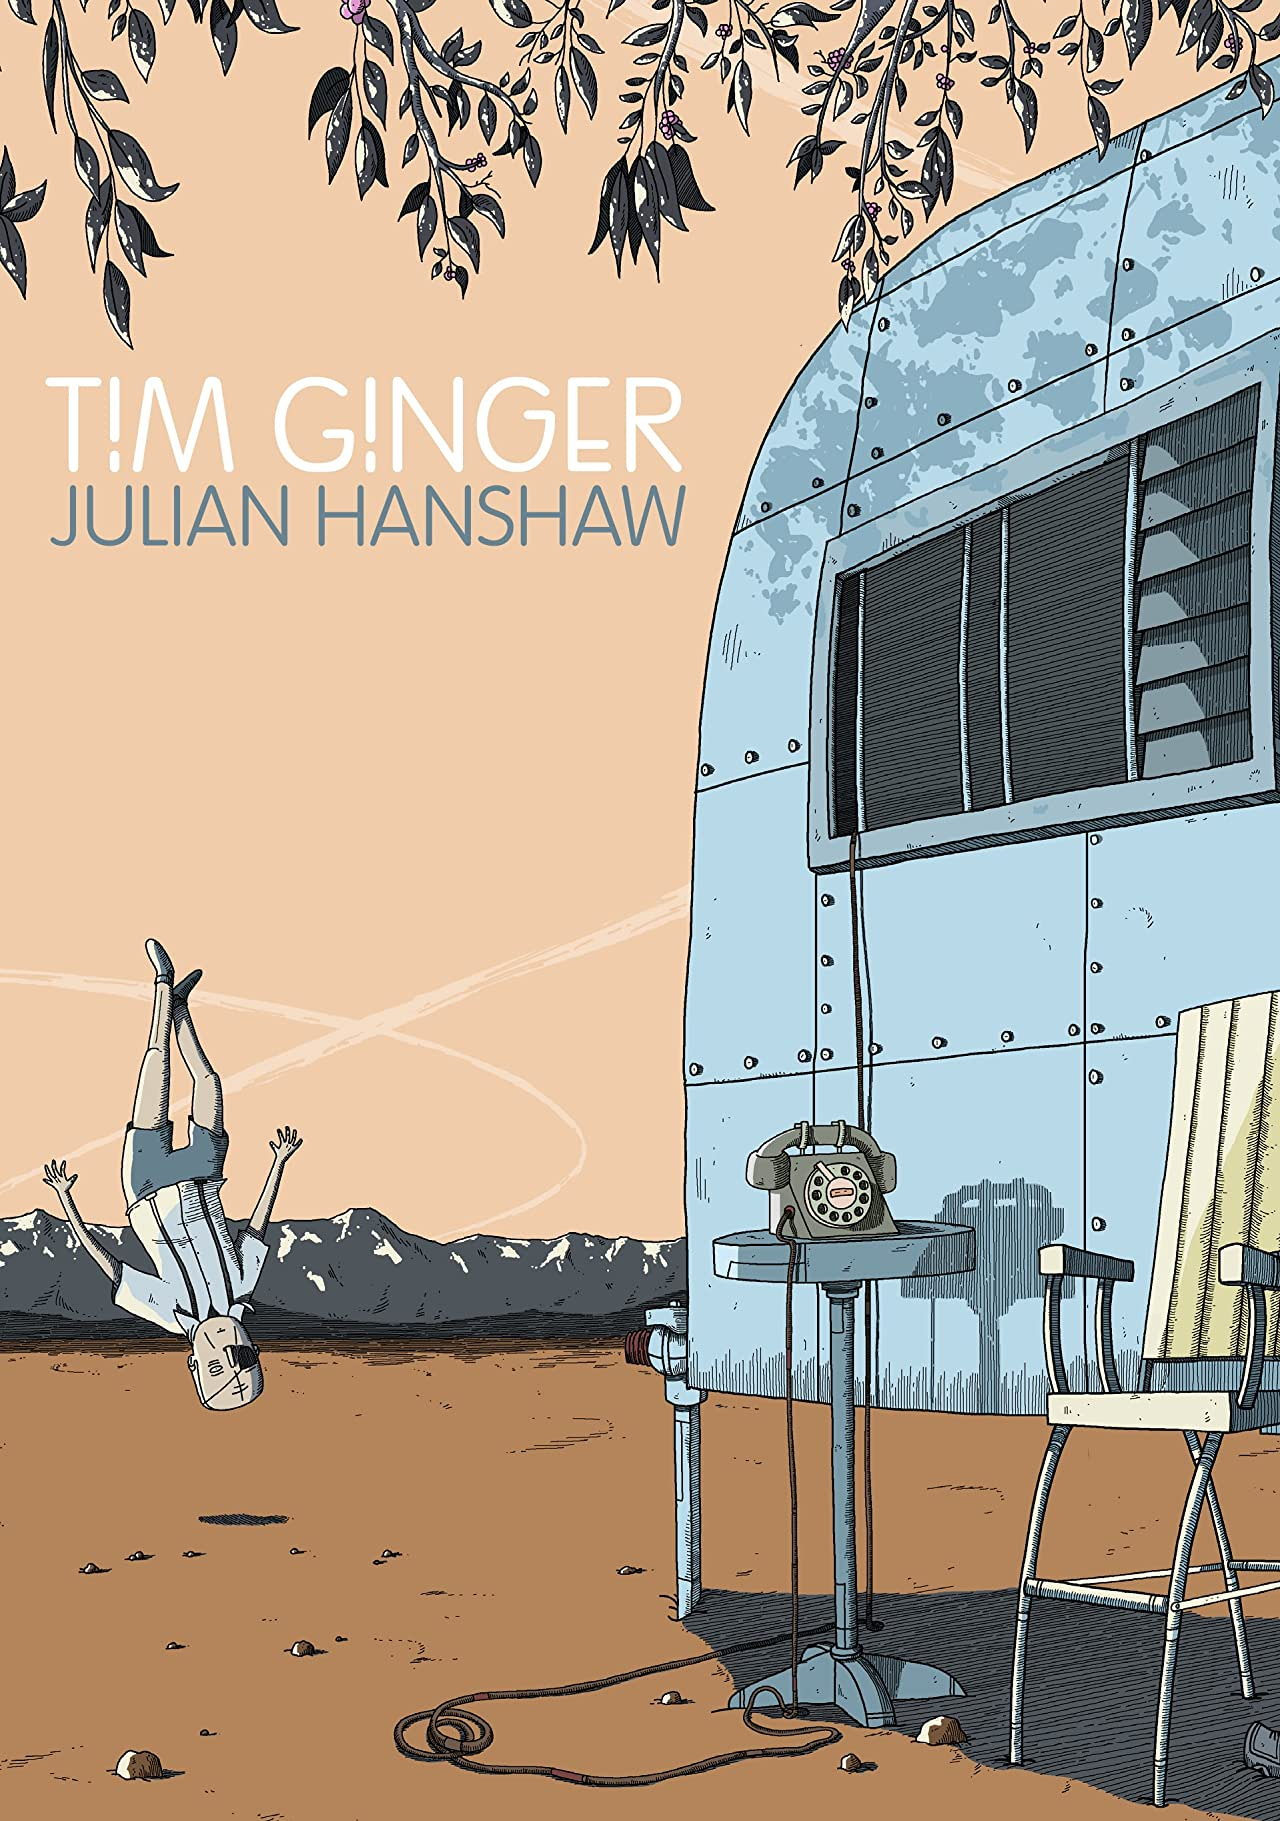 Tim Ginger